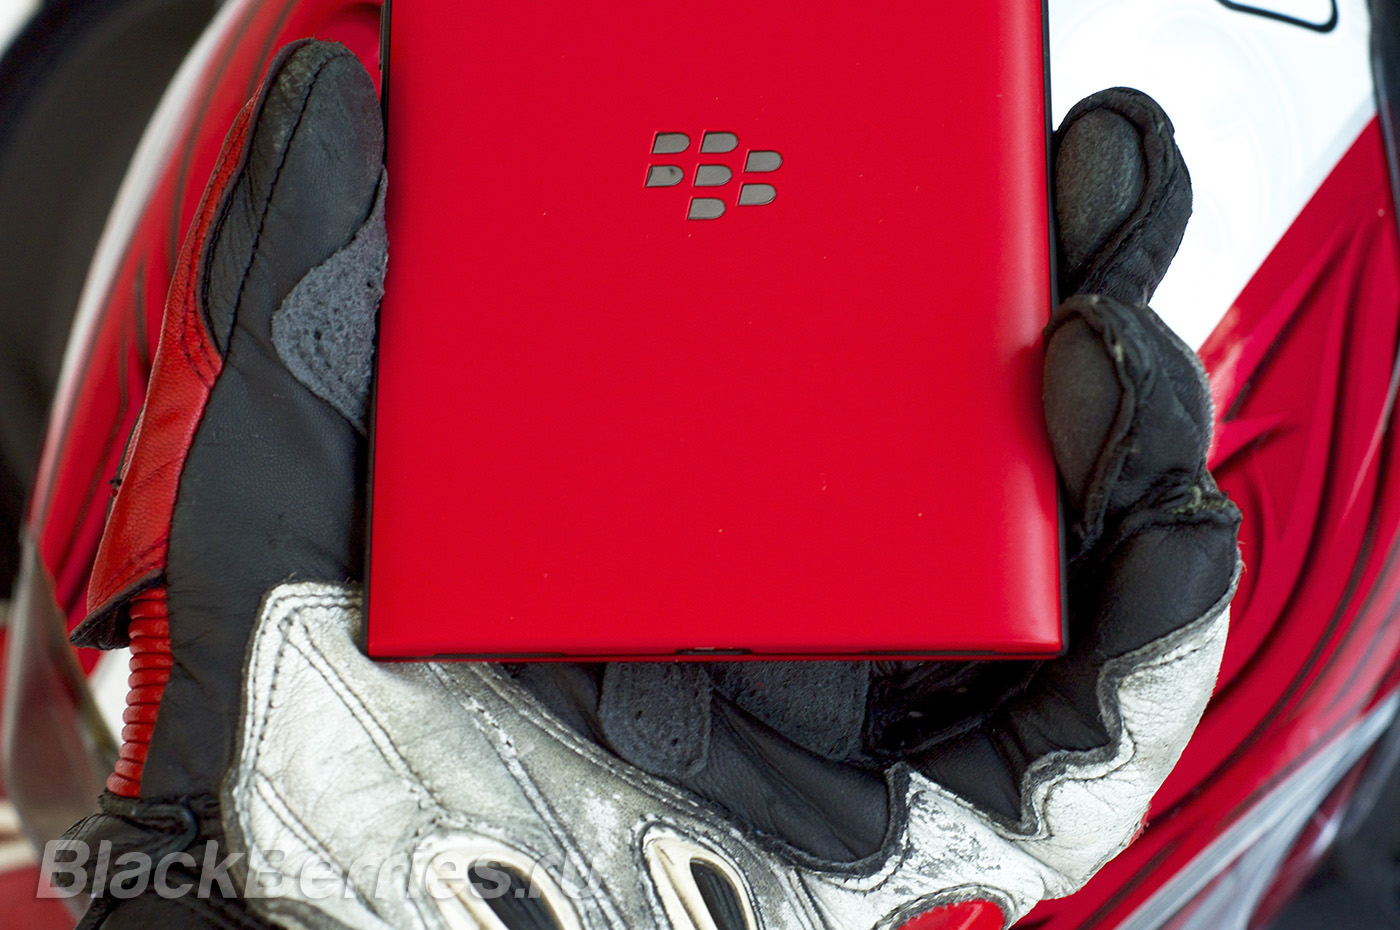 BlackBerry-Passport-Red-12